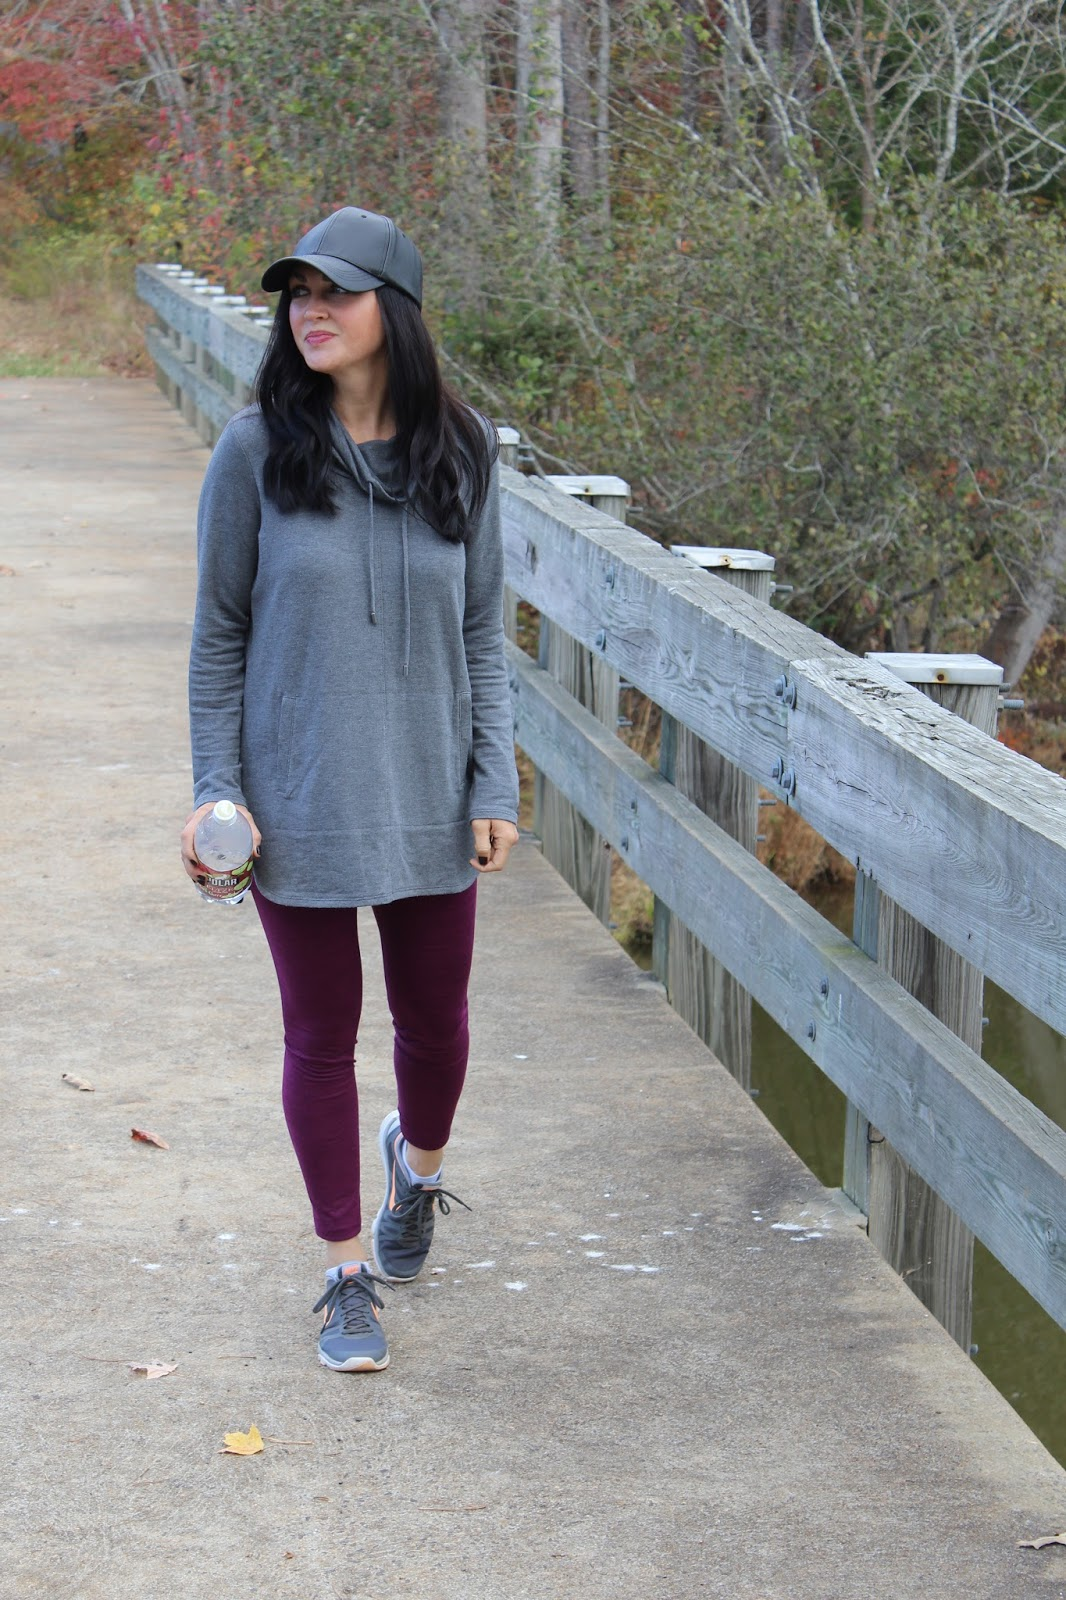 How to wear athleisure outfit with a hat